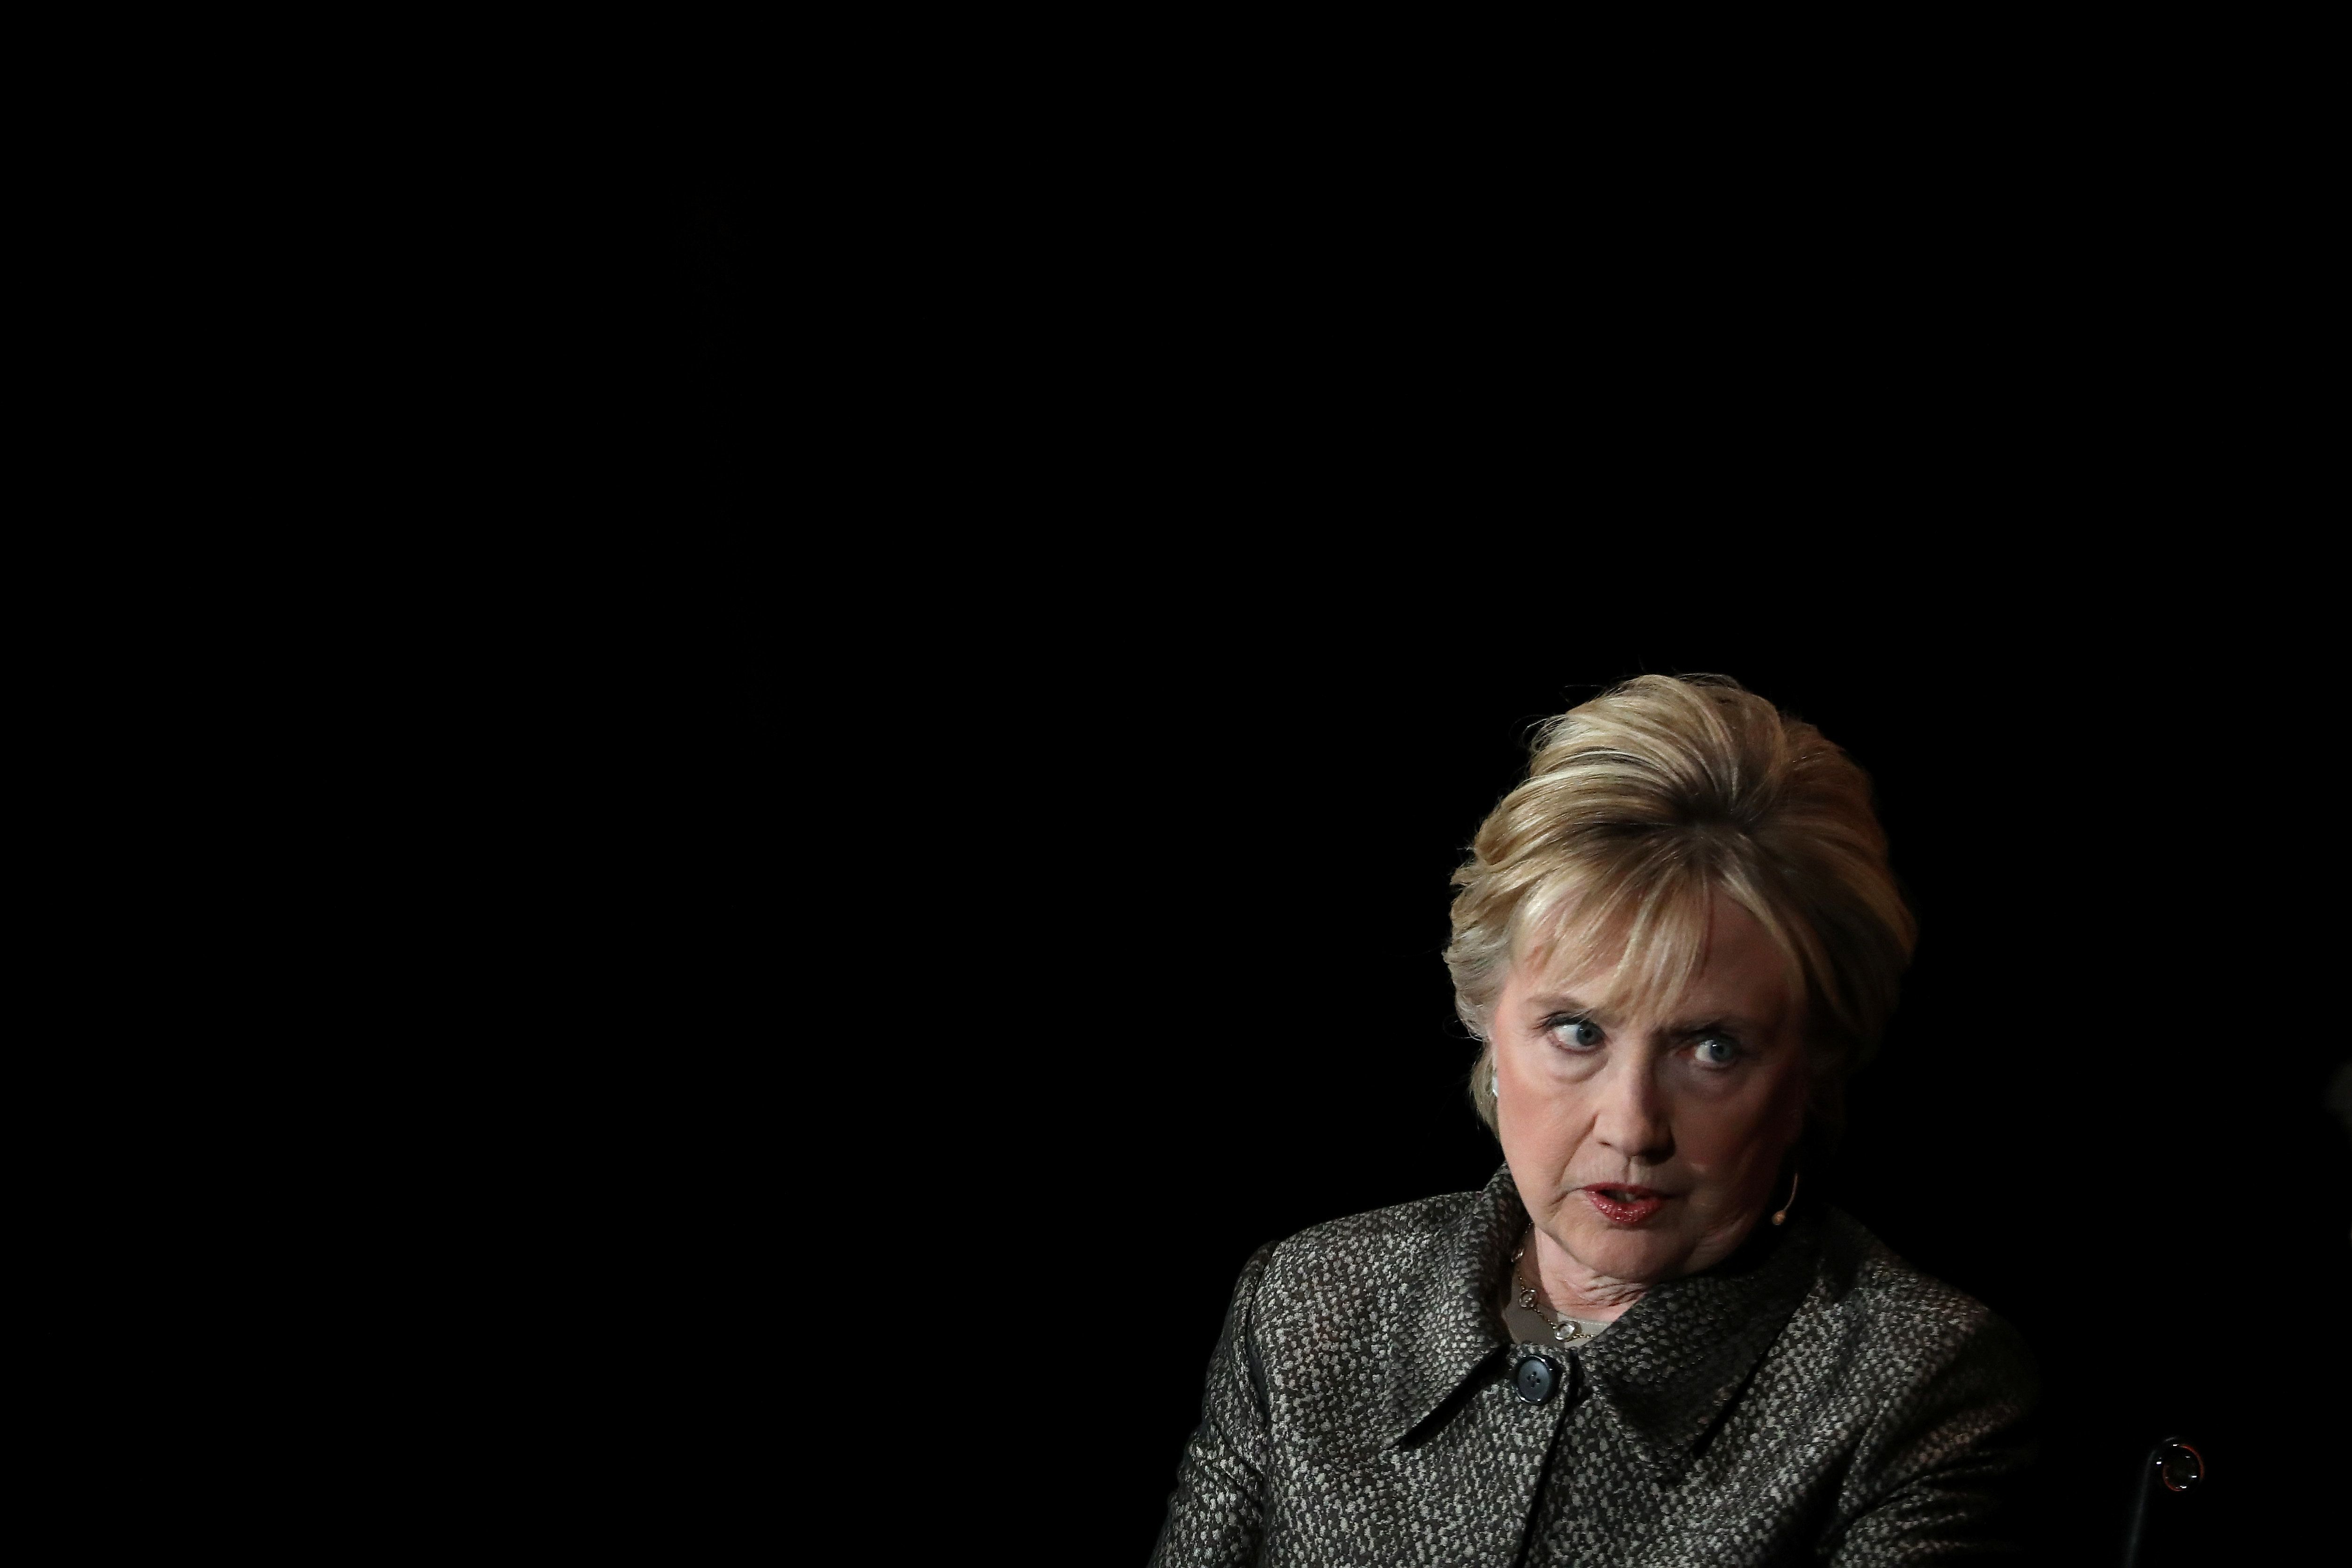 Hillary Clinton On Violence In Virginia: 'This Is Not Who We